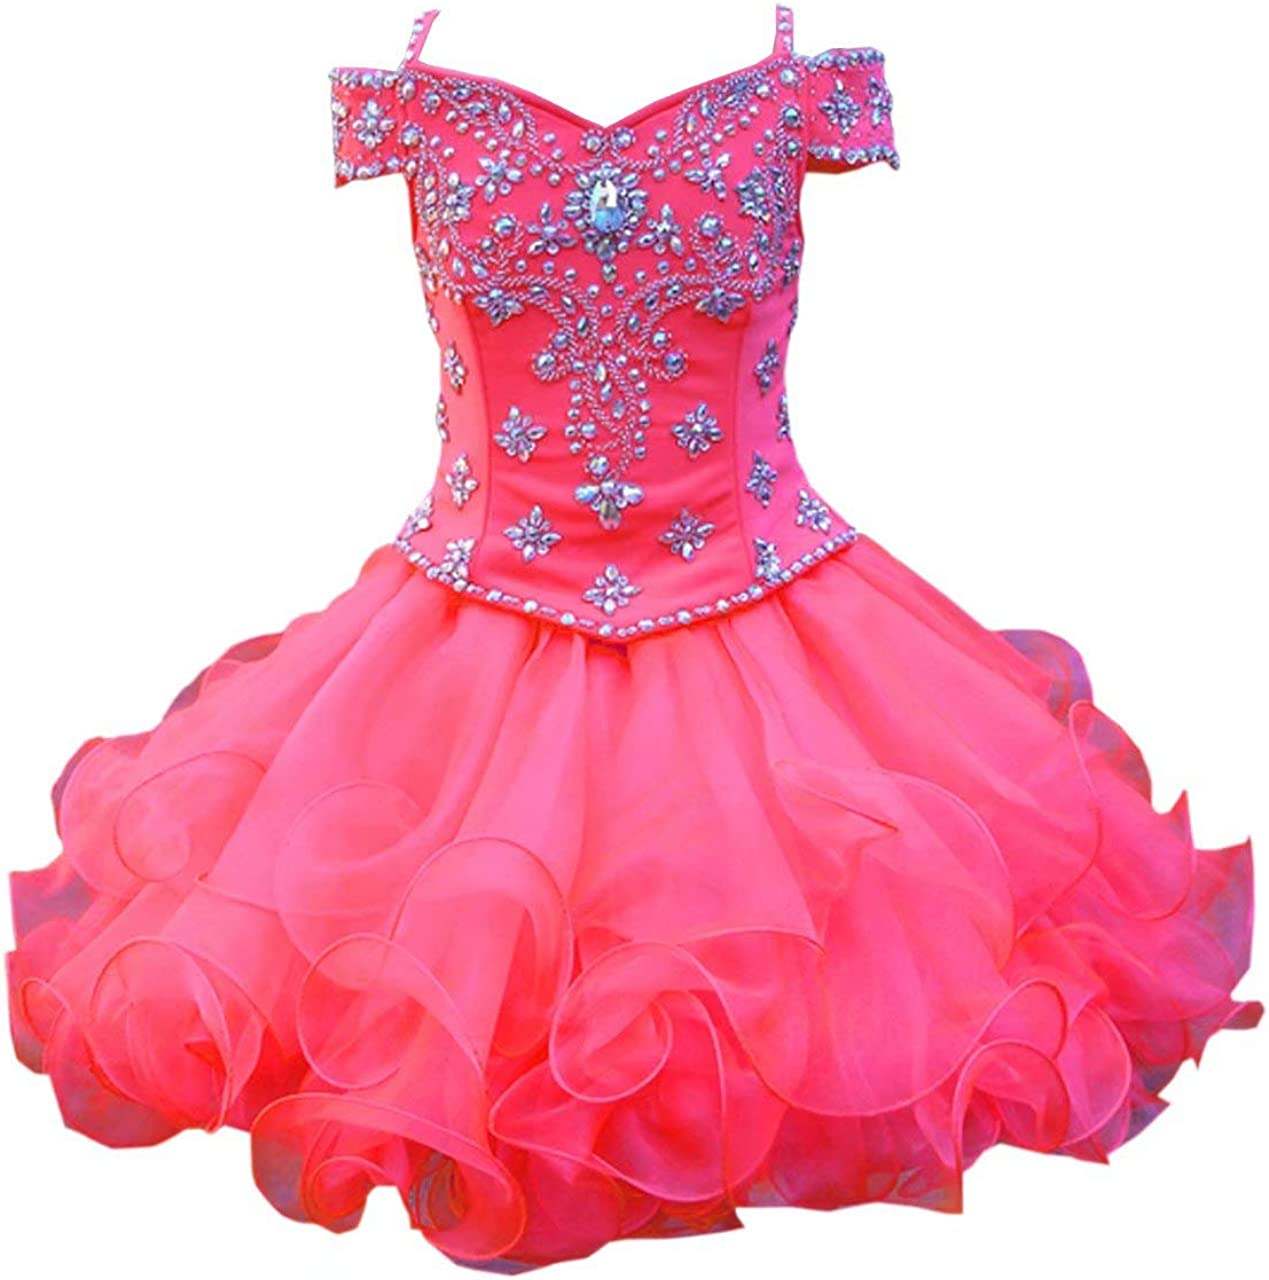 low-pricing DommyDesign Ball Gown Cupcake Toddler Girl Dress Regular discount Sh Pageant Cold